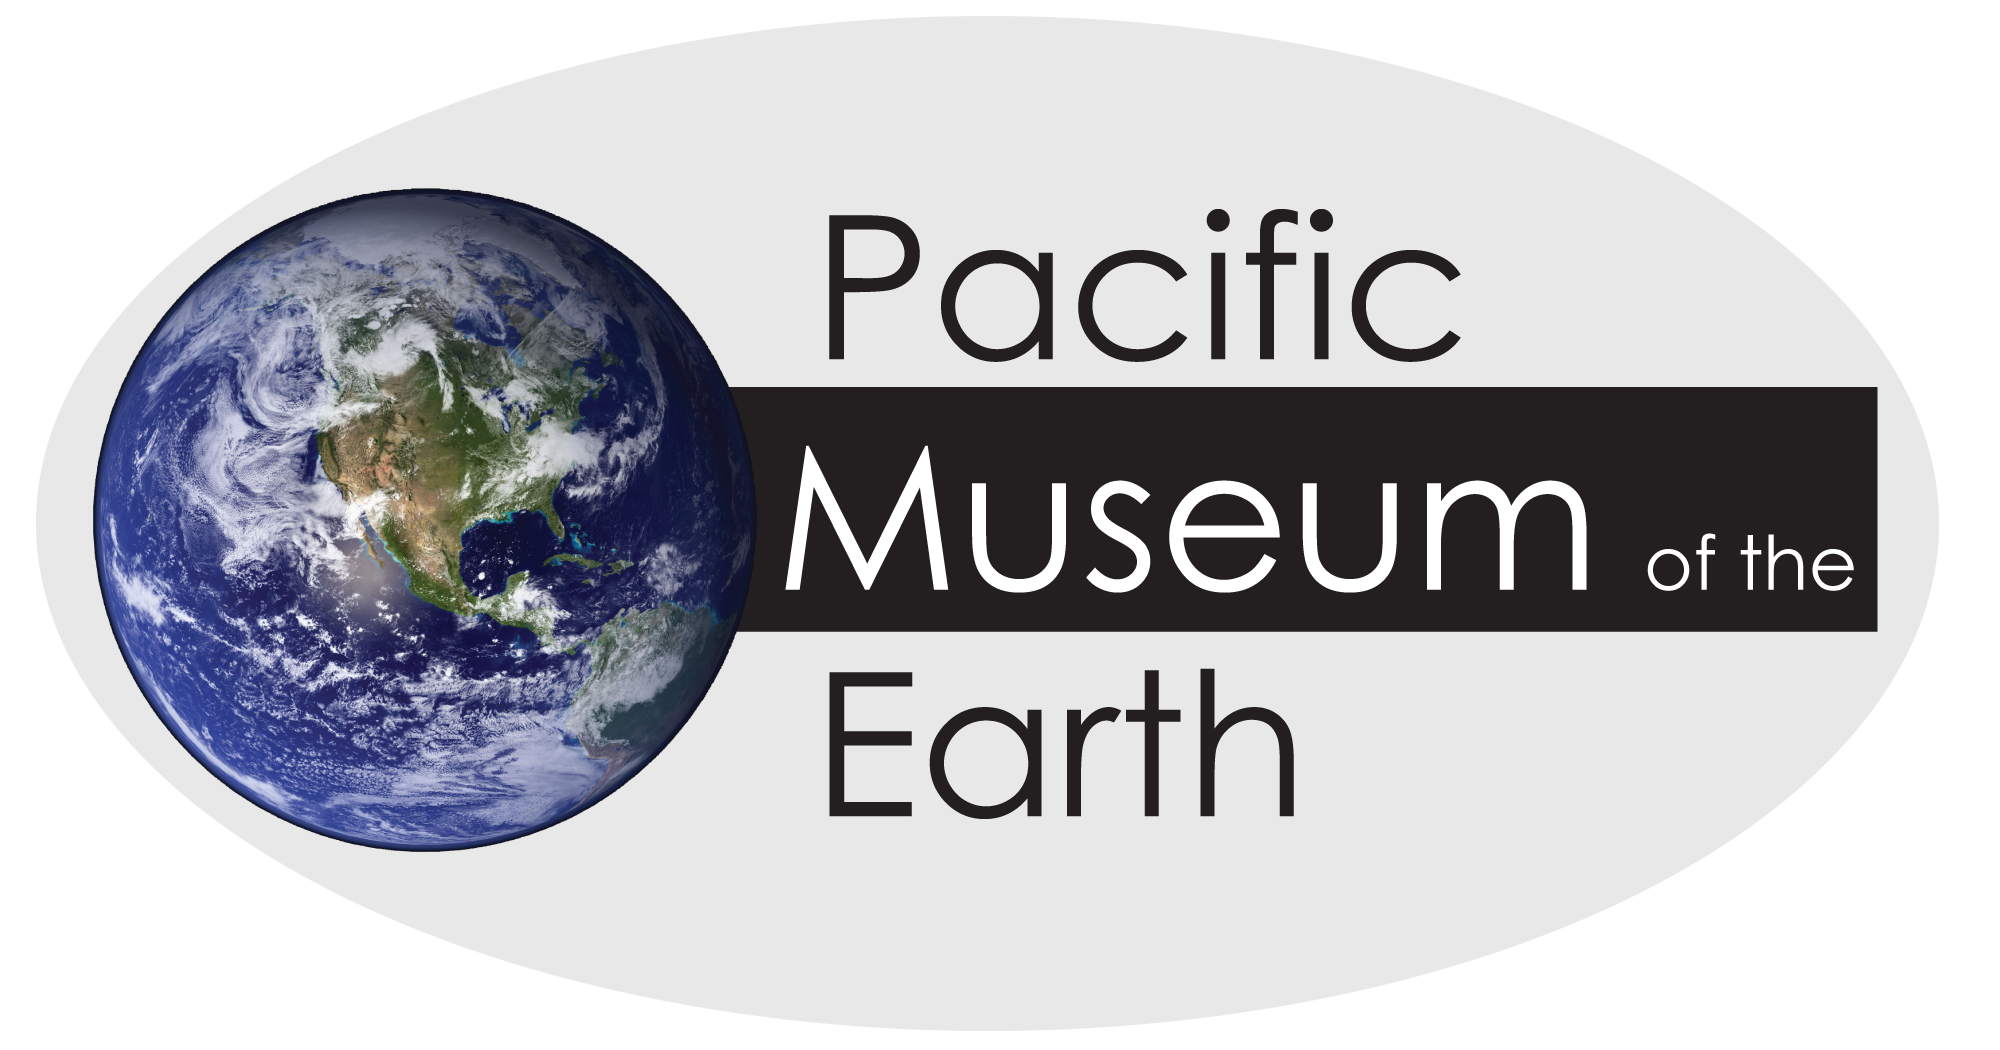 Pacific Museum of the Earth